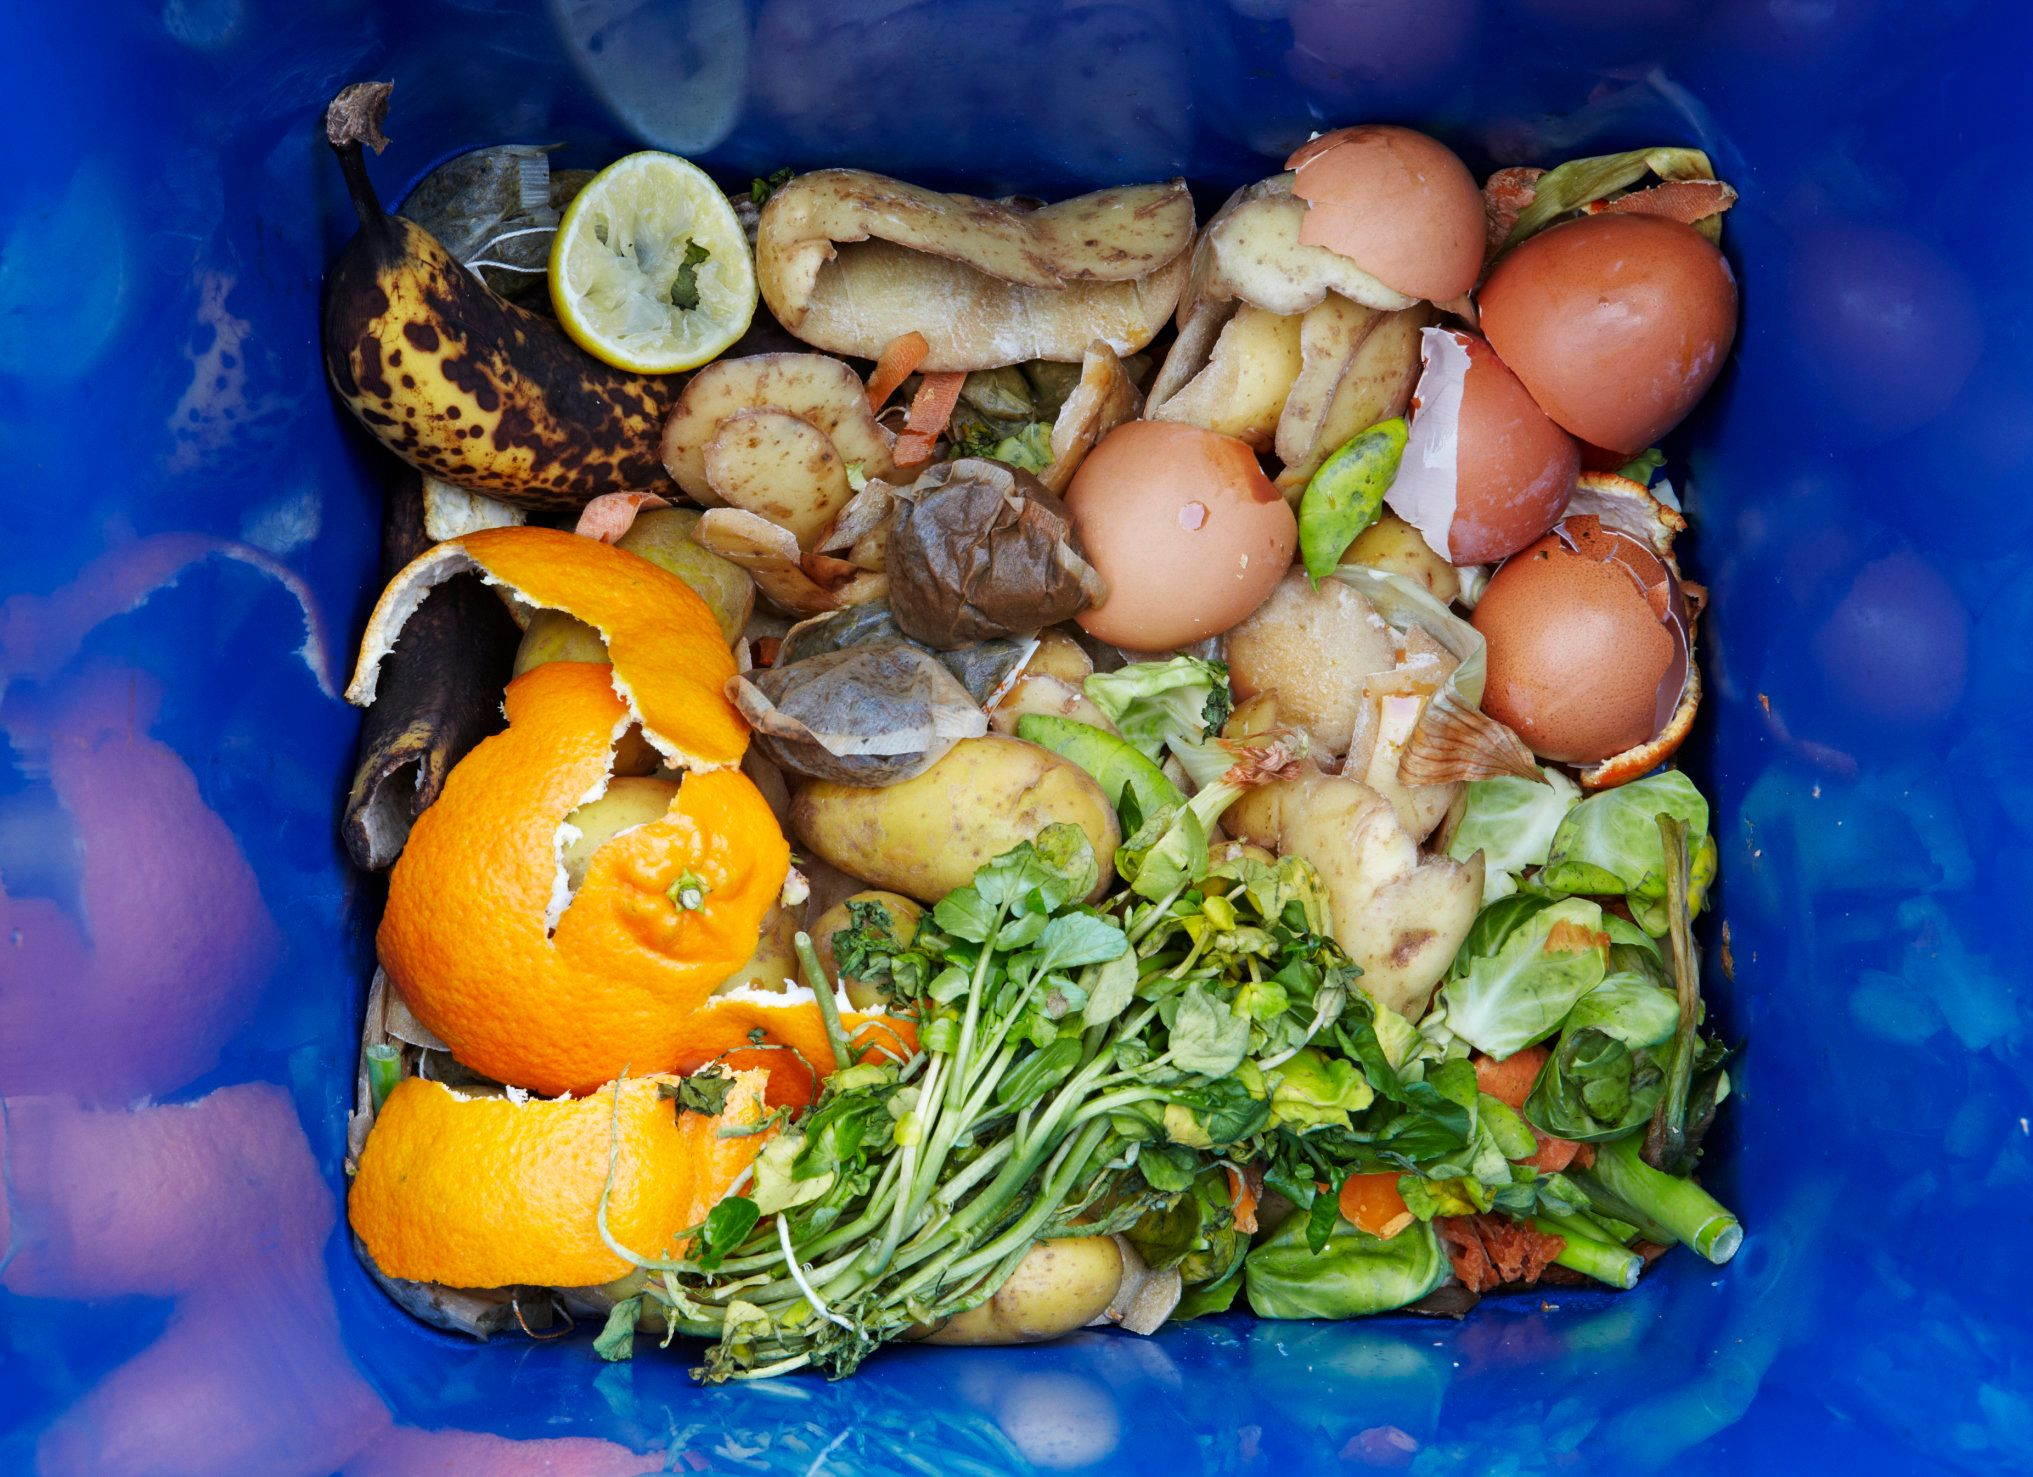 Food waste recycling caddy. The food waste in the UK is intended to be composted and thereby preventing it to be sent to landfill